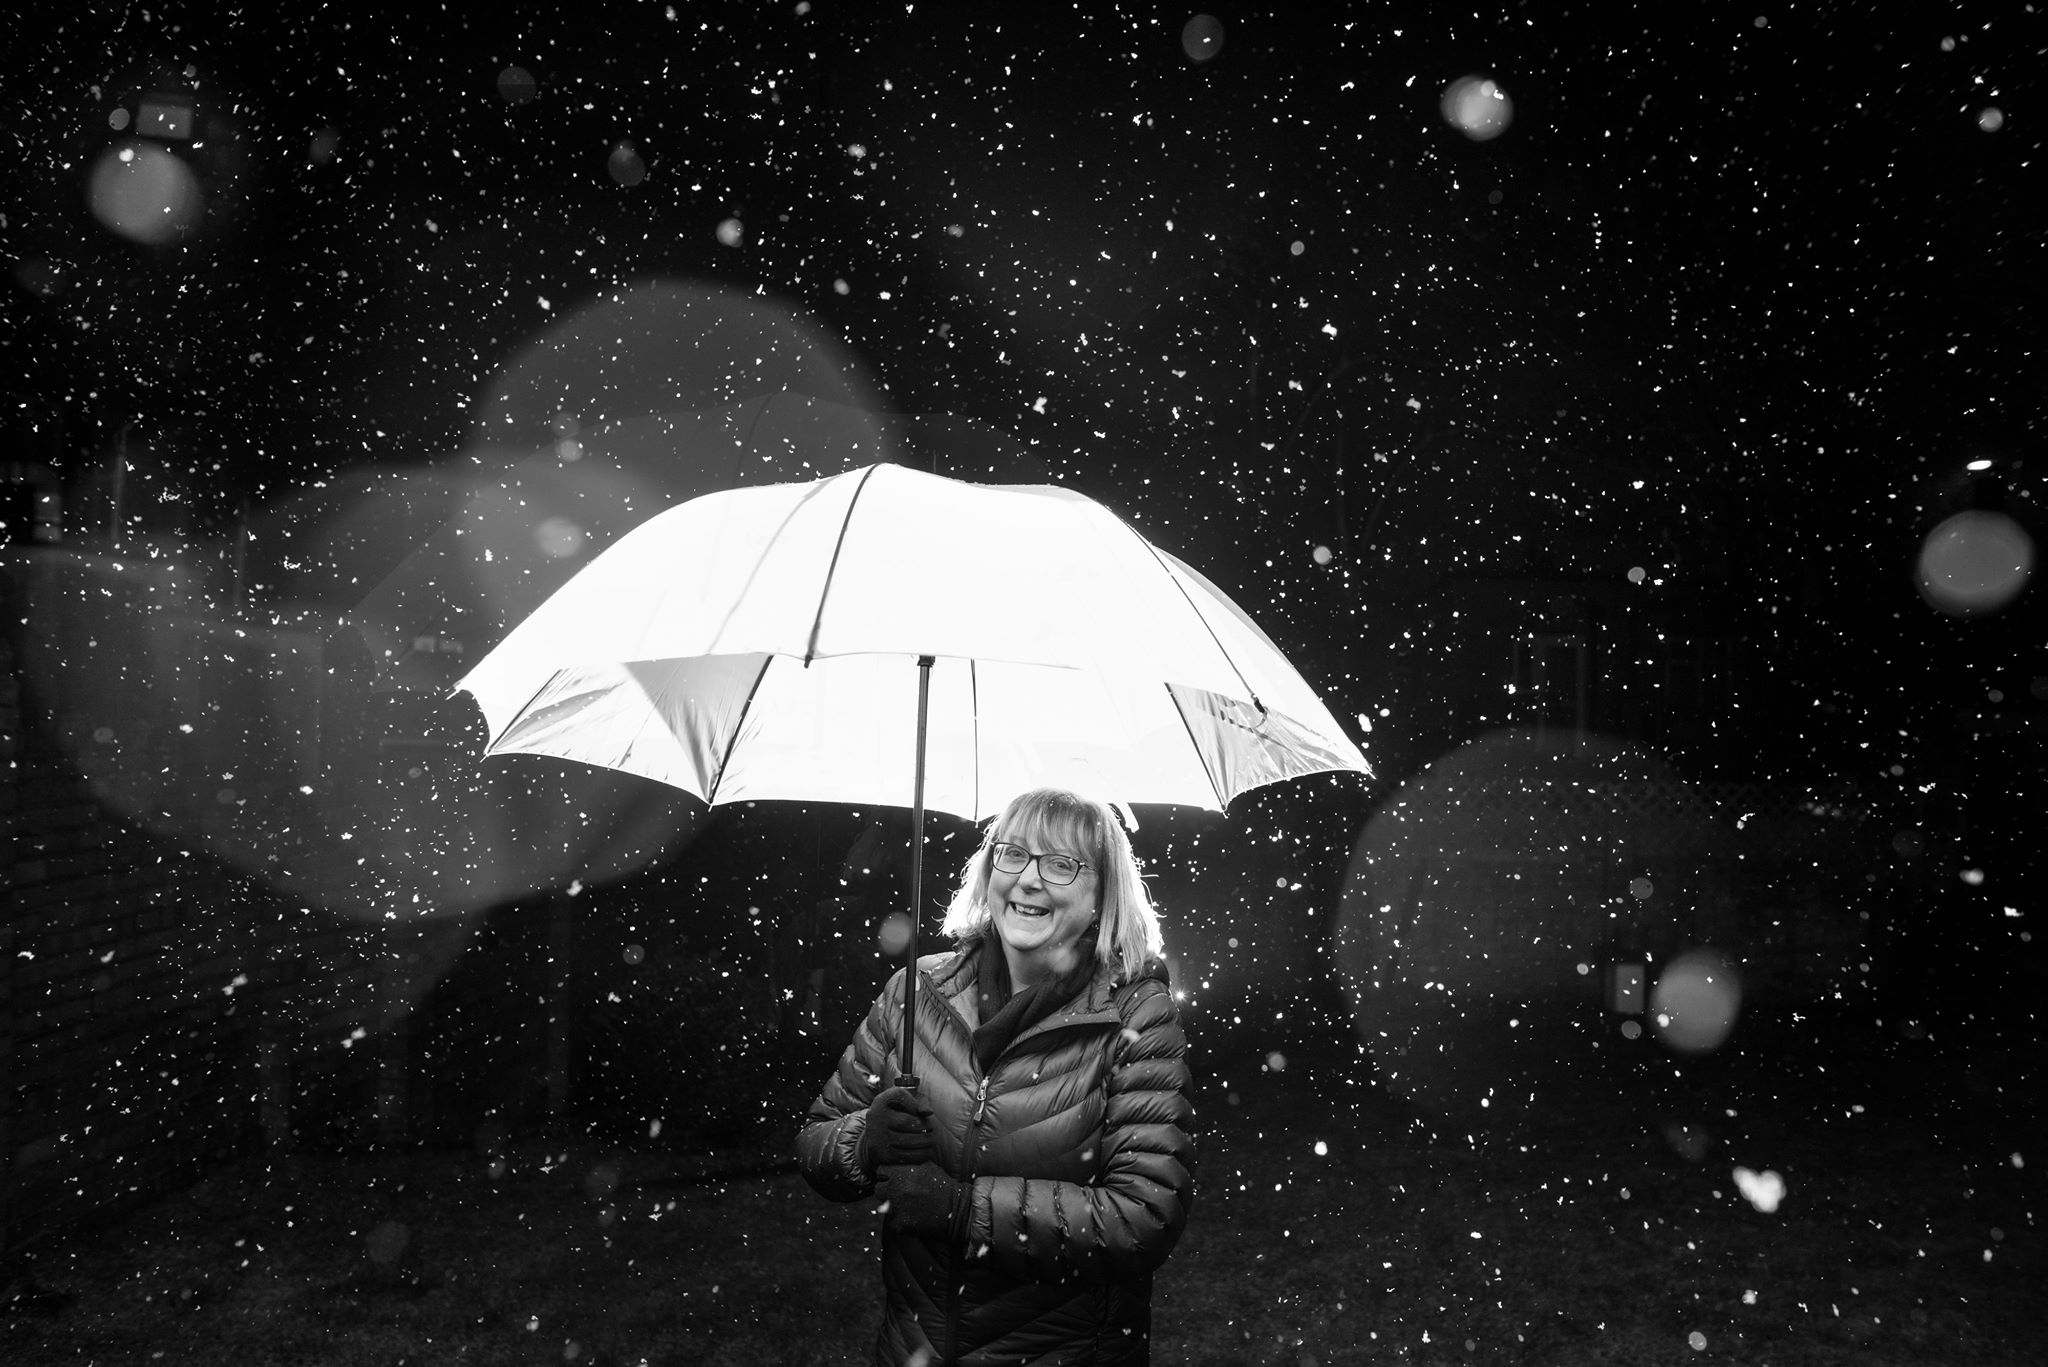 """""""Last January I was getting to grips with and improving my off camera flash so when I saw it was snowing I grabbed my camera, speedlight and triggers and the closest person (mum) and did this super quick shot. I love the snow flakes, the droplets on the lens doing lovely bokeh stuff, but mostly I love her beaming smile - ever supportive, ever proud. I wouldn't be where I am today without her and my dad. They're awesome and I love them""""  Elyse Marks"""